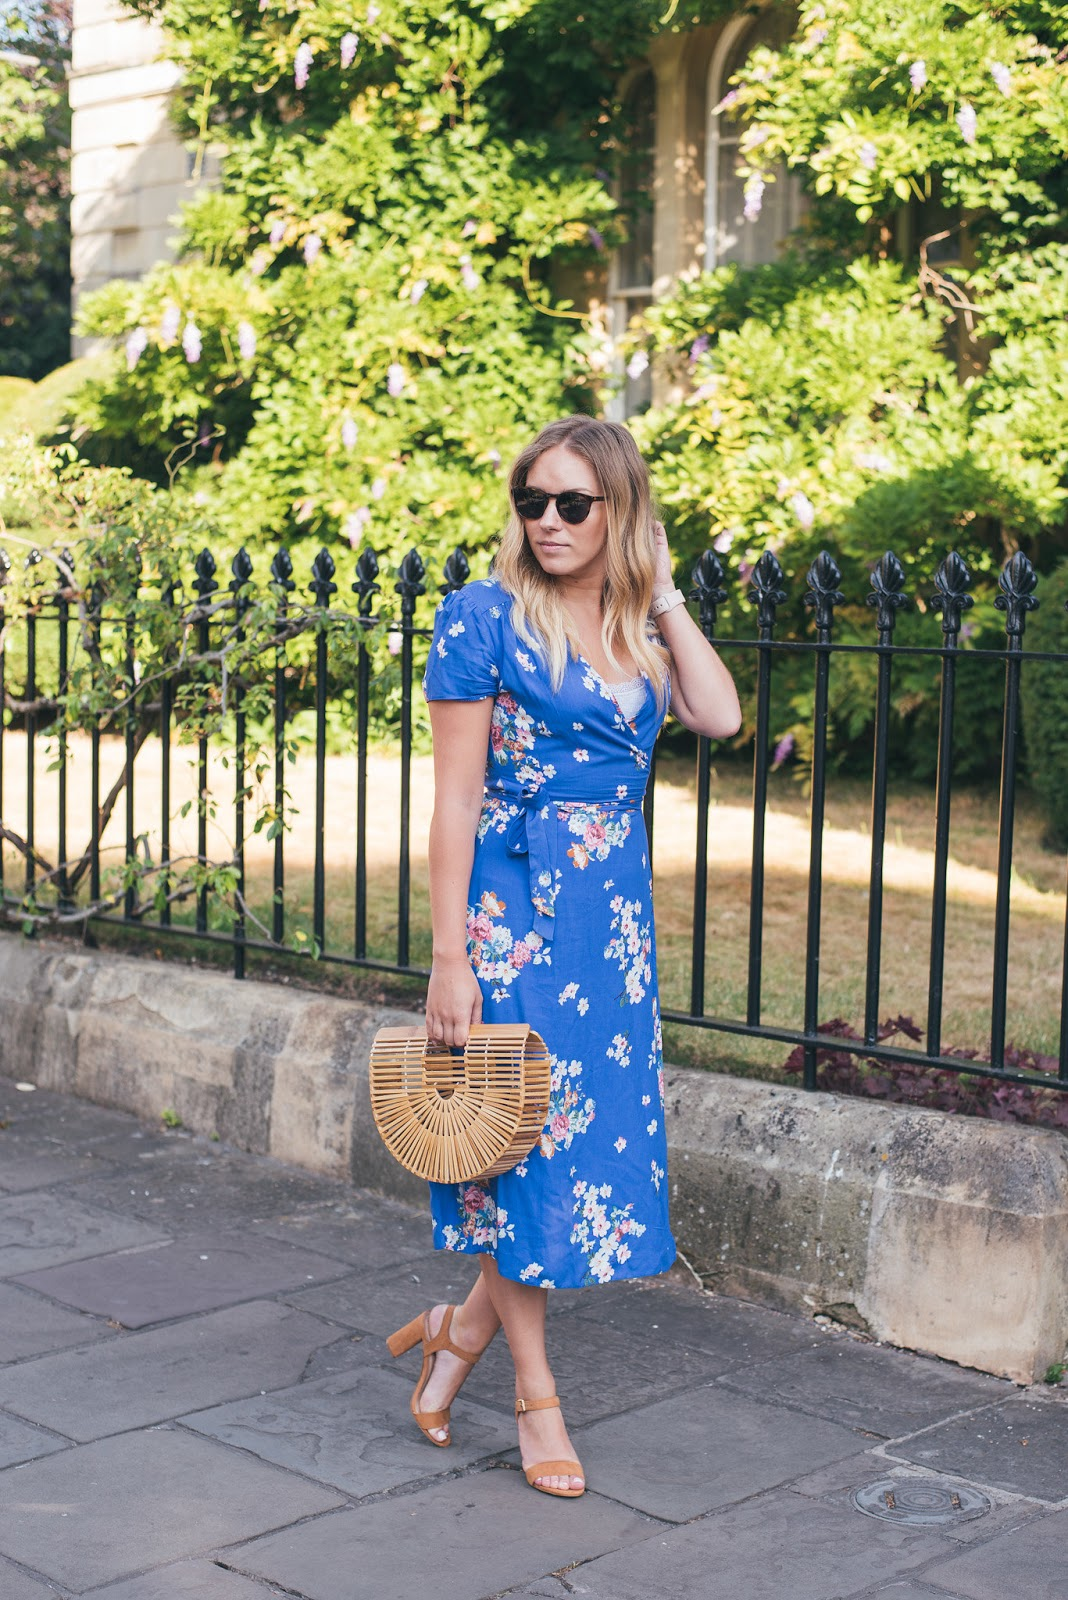 Rachel Emily Walking in the Primark Blue Floral midi Wrap Dress that you need in your wardrobe